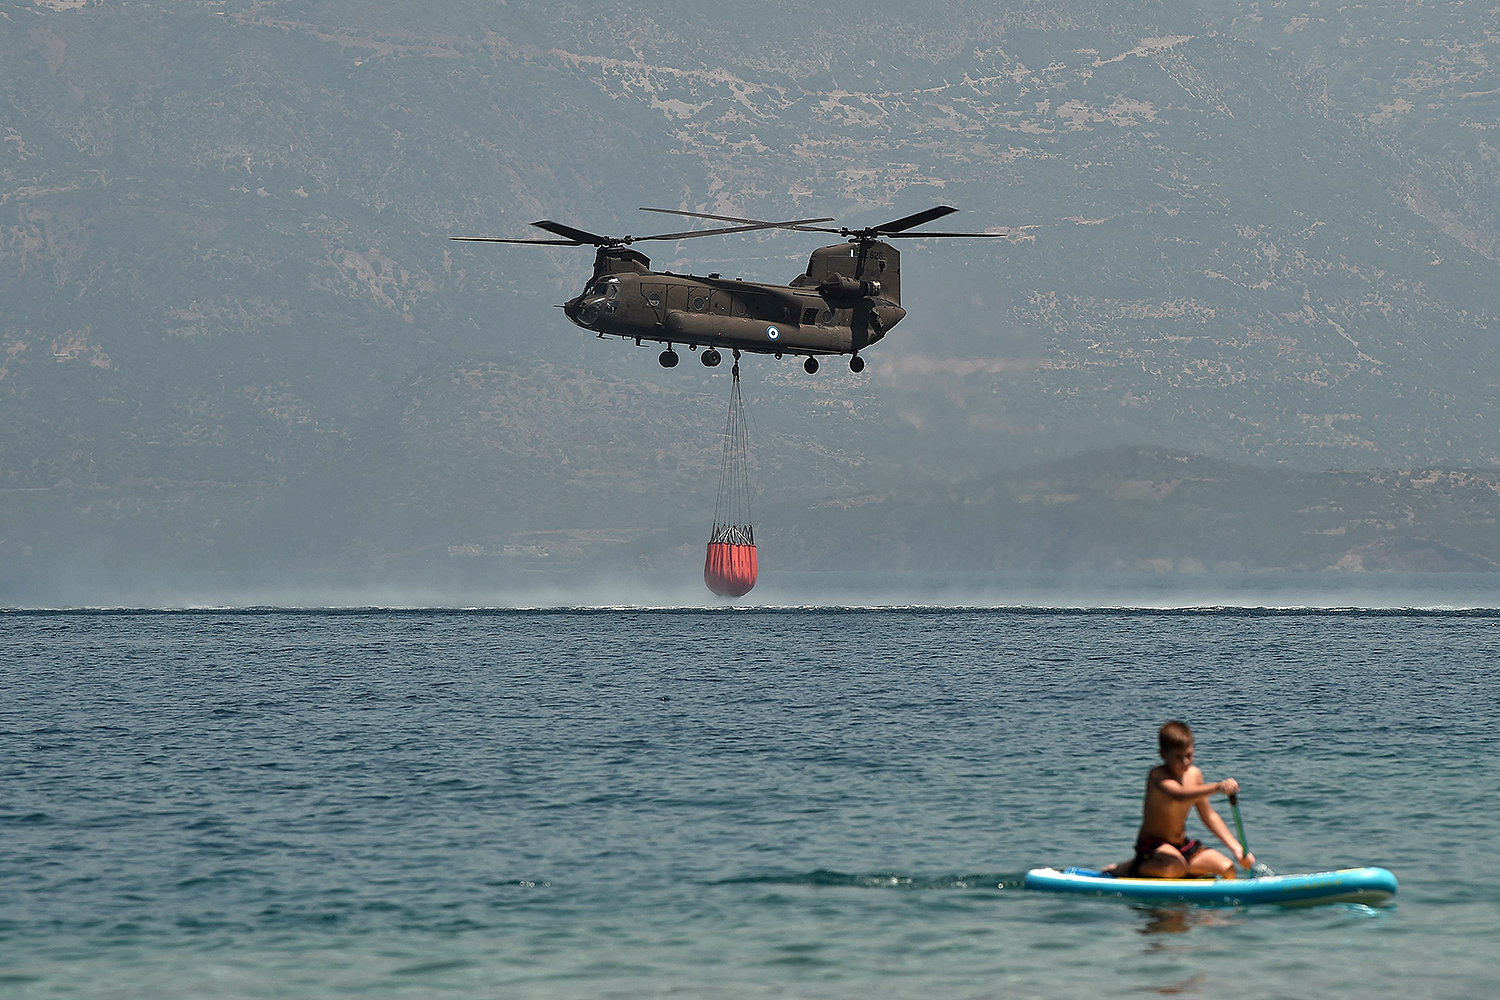 A helicopter retrieves water off the coast of Greece.